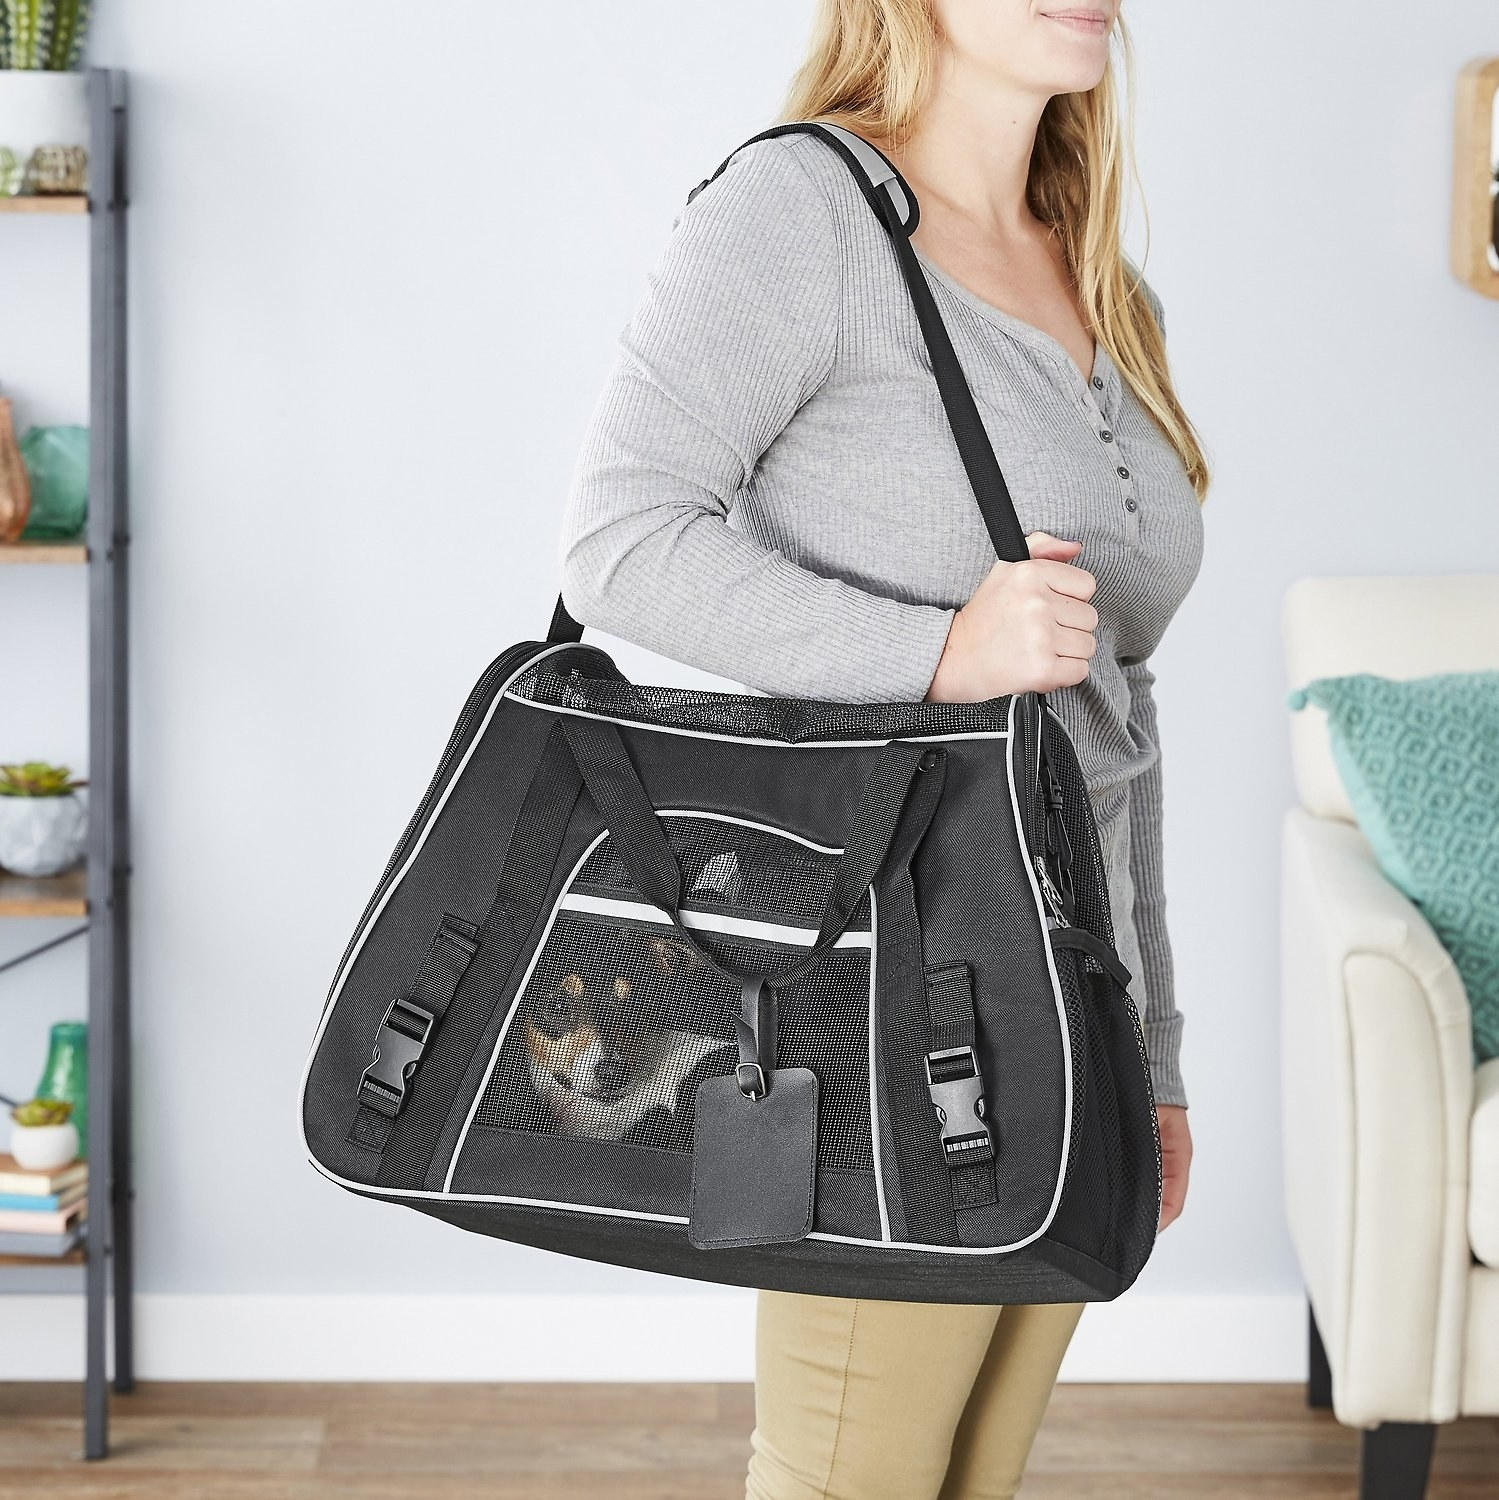 model holding the carrier, which looks like a mesh duffle bag, with a dog inside